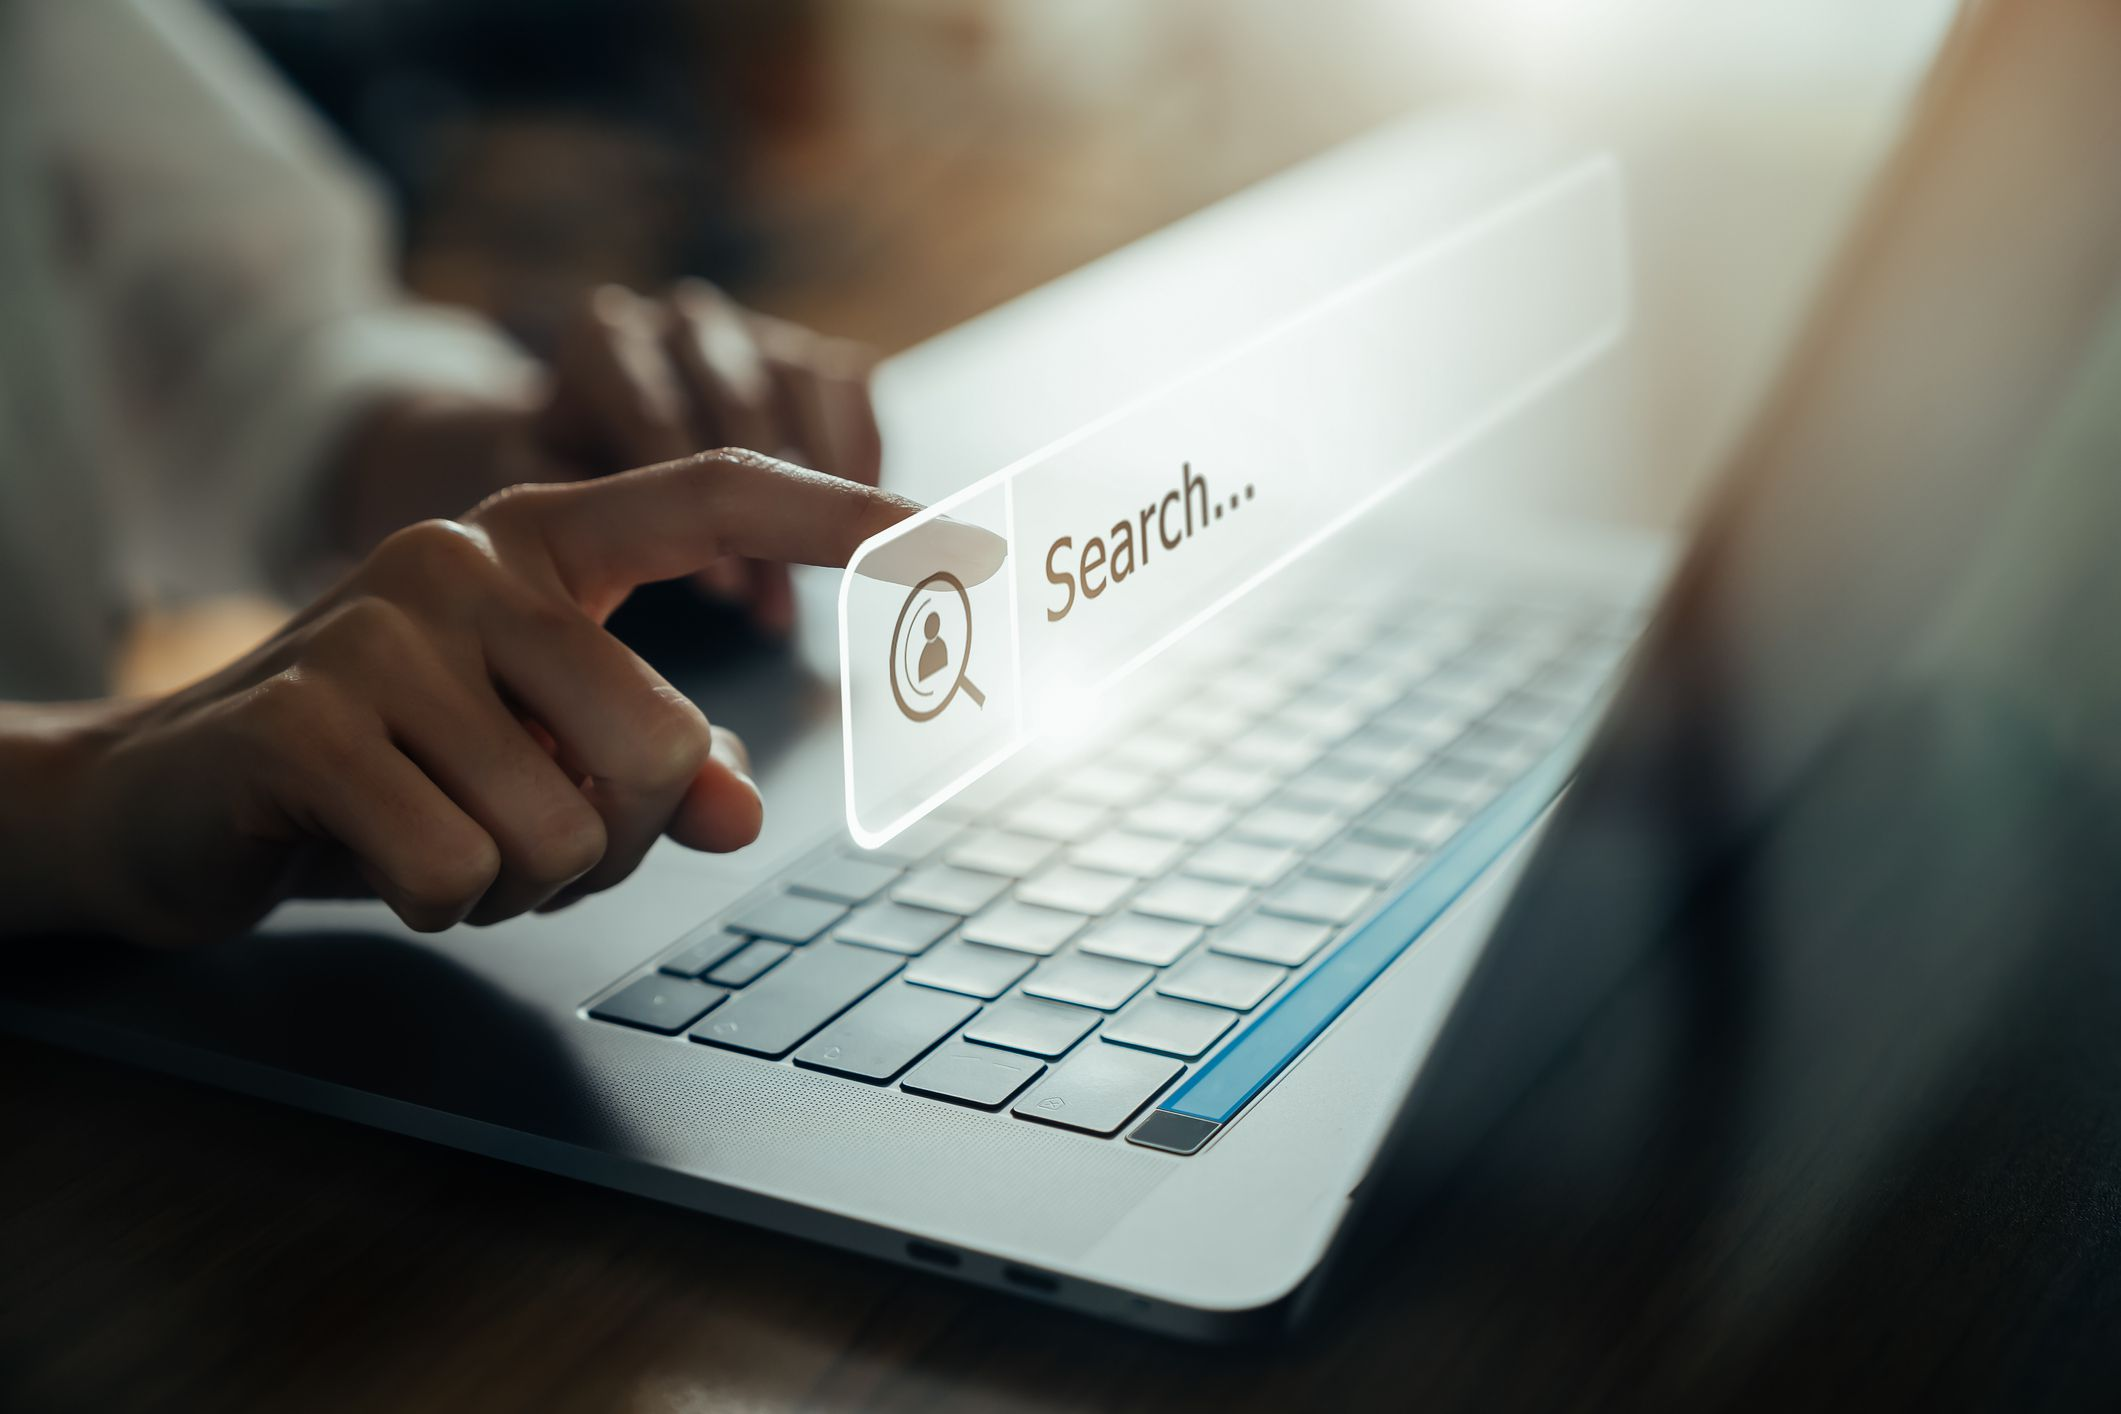 Closeup of someone using a laptop and touching a virtual searchbar overlayed on the image.